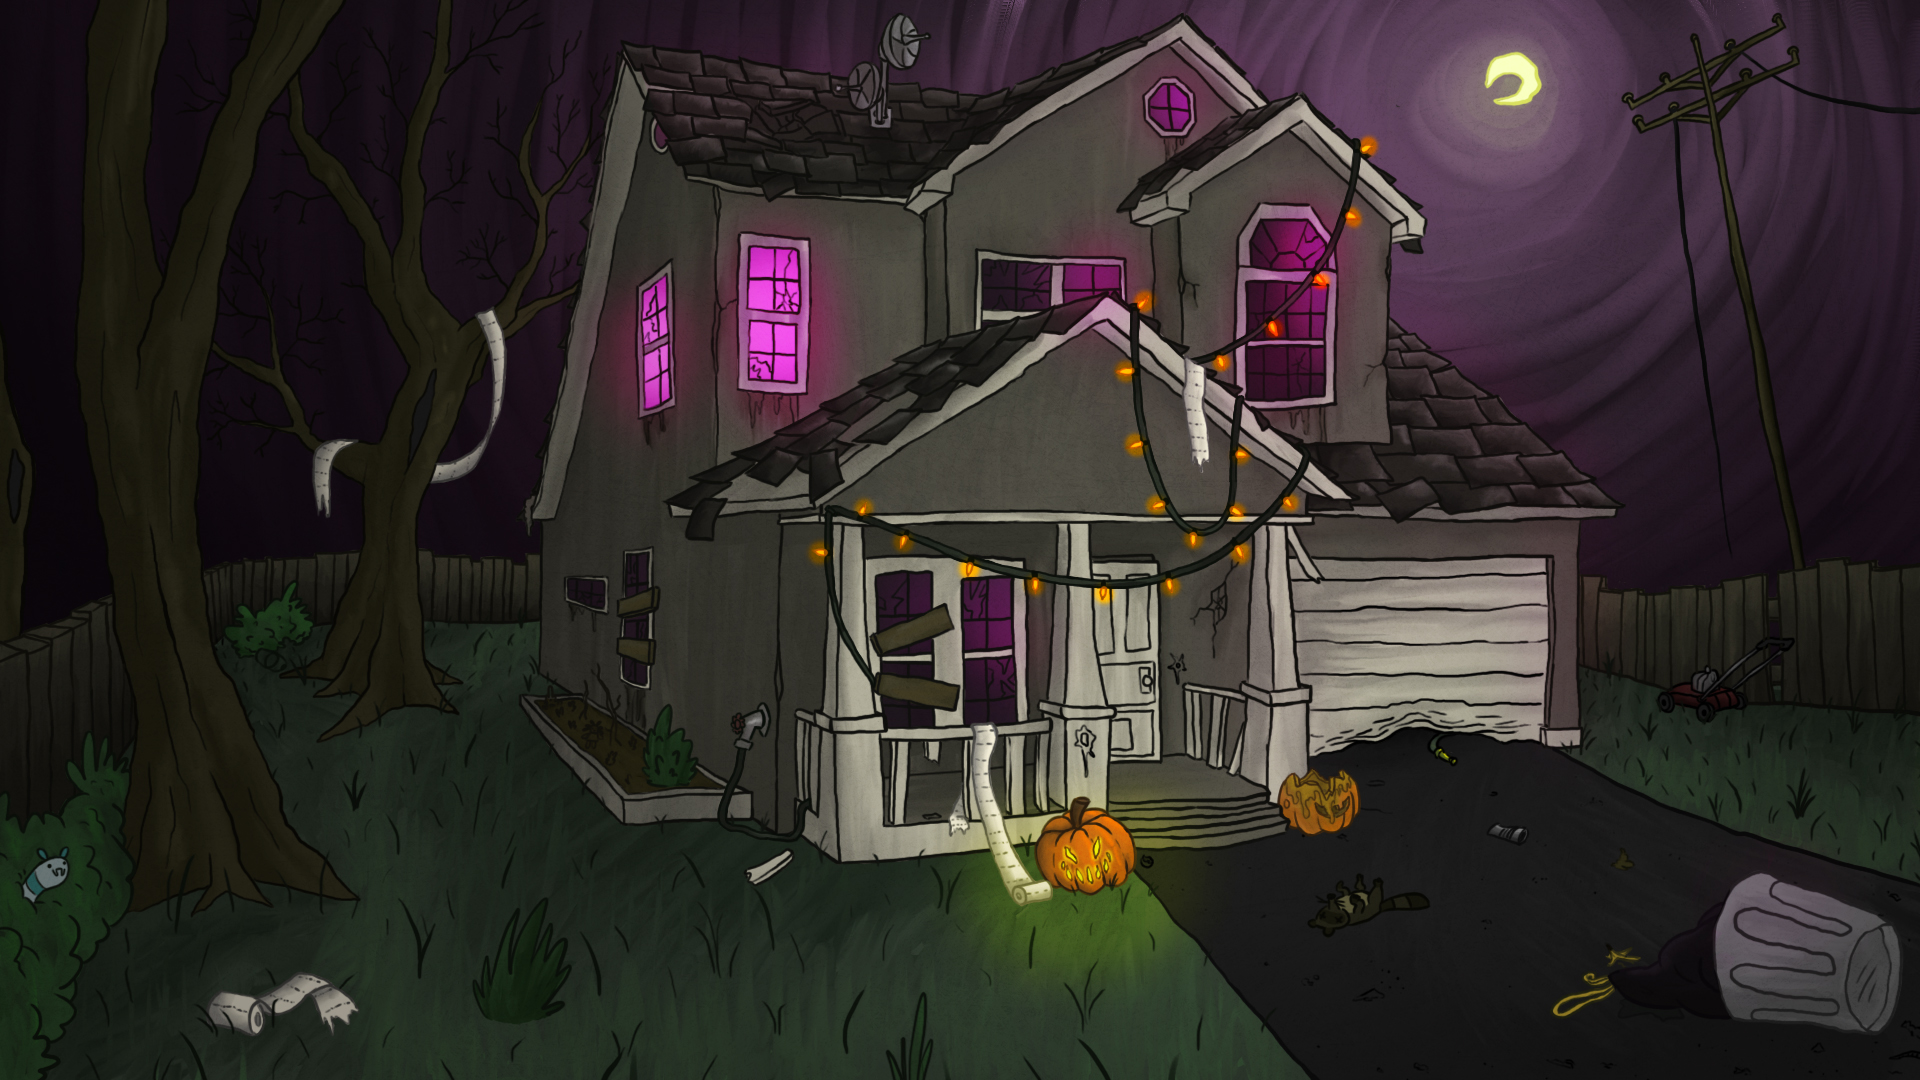 Dead Kidz Abandoned House Background Art By Critterfitz On